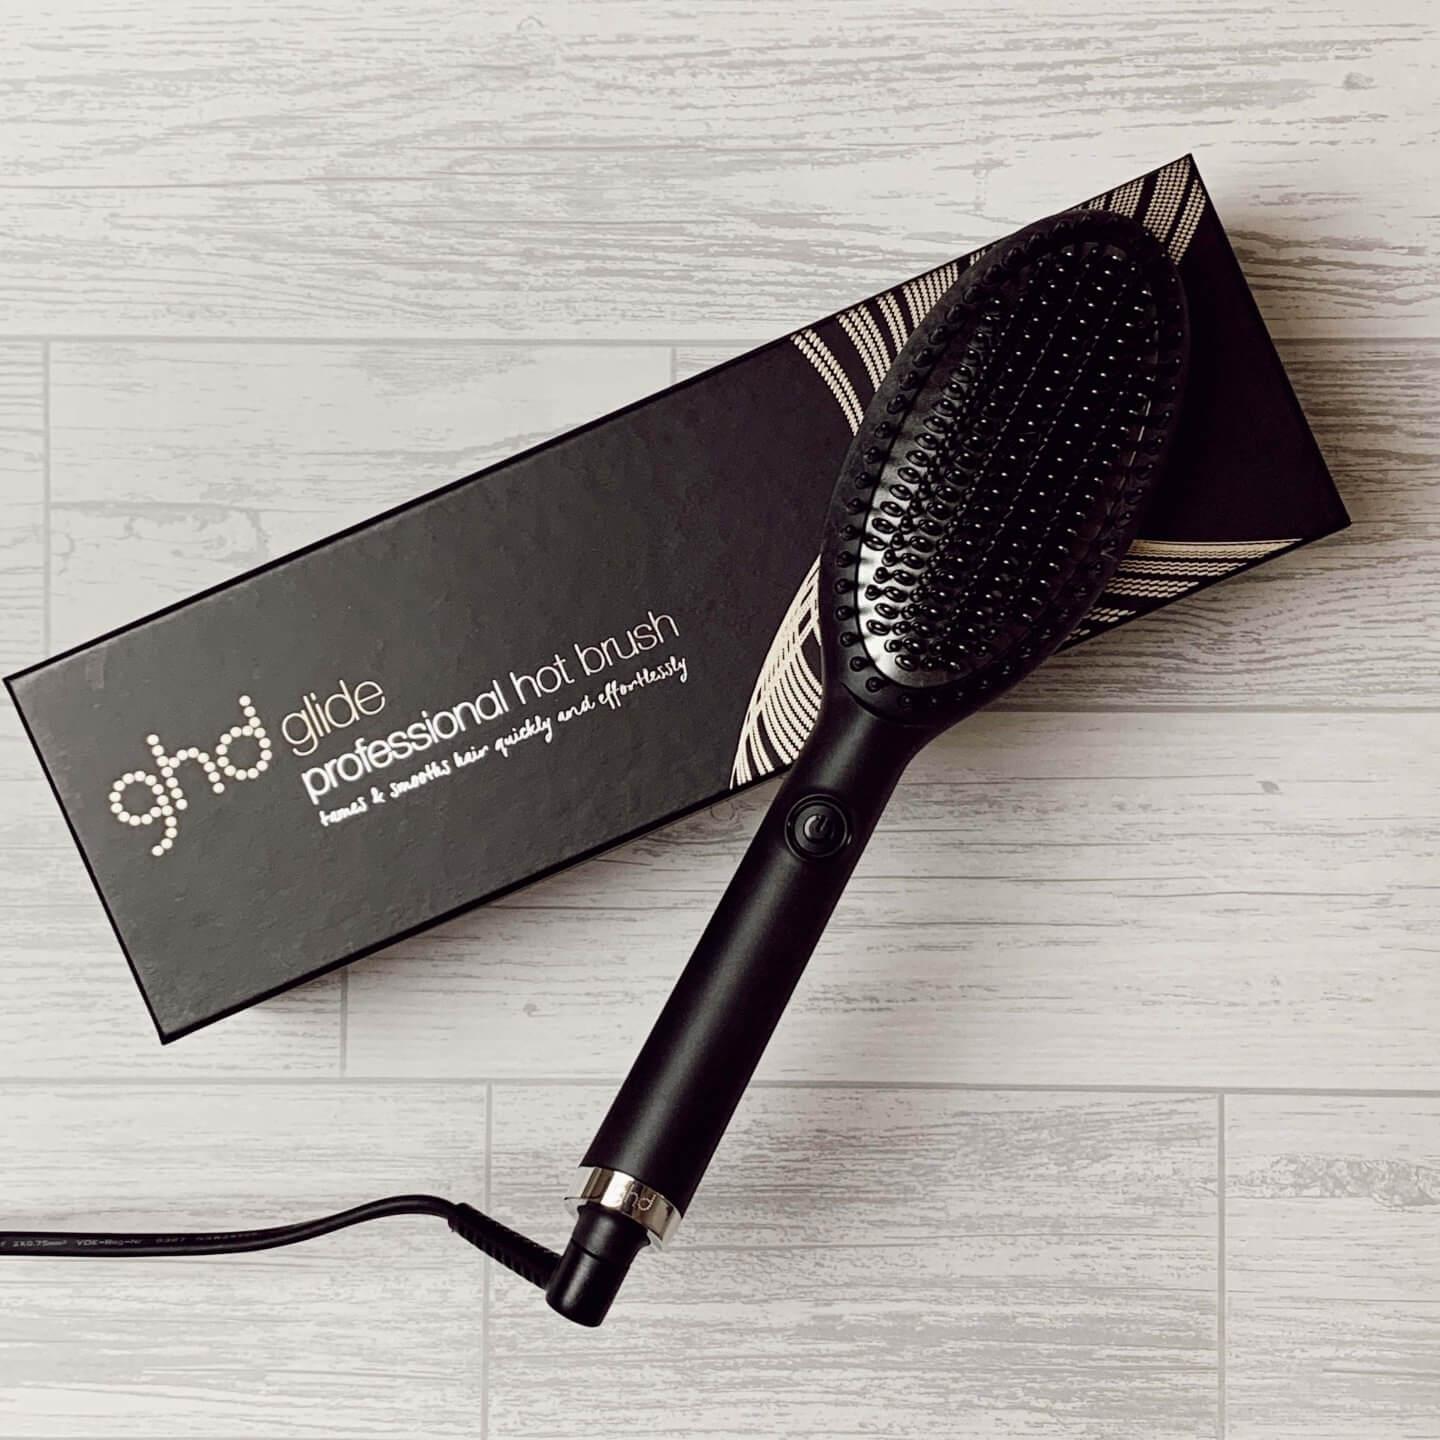 ghd glide  Do You Need The GHD Glide? - by lauren jane